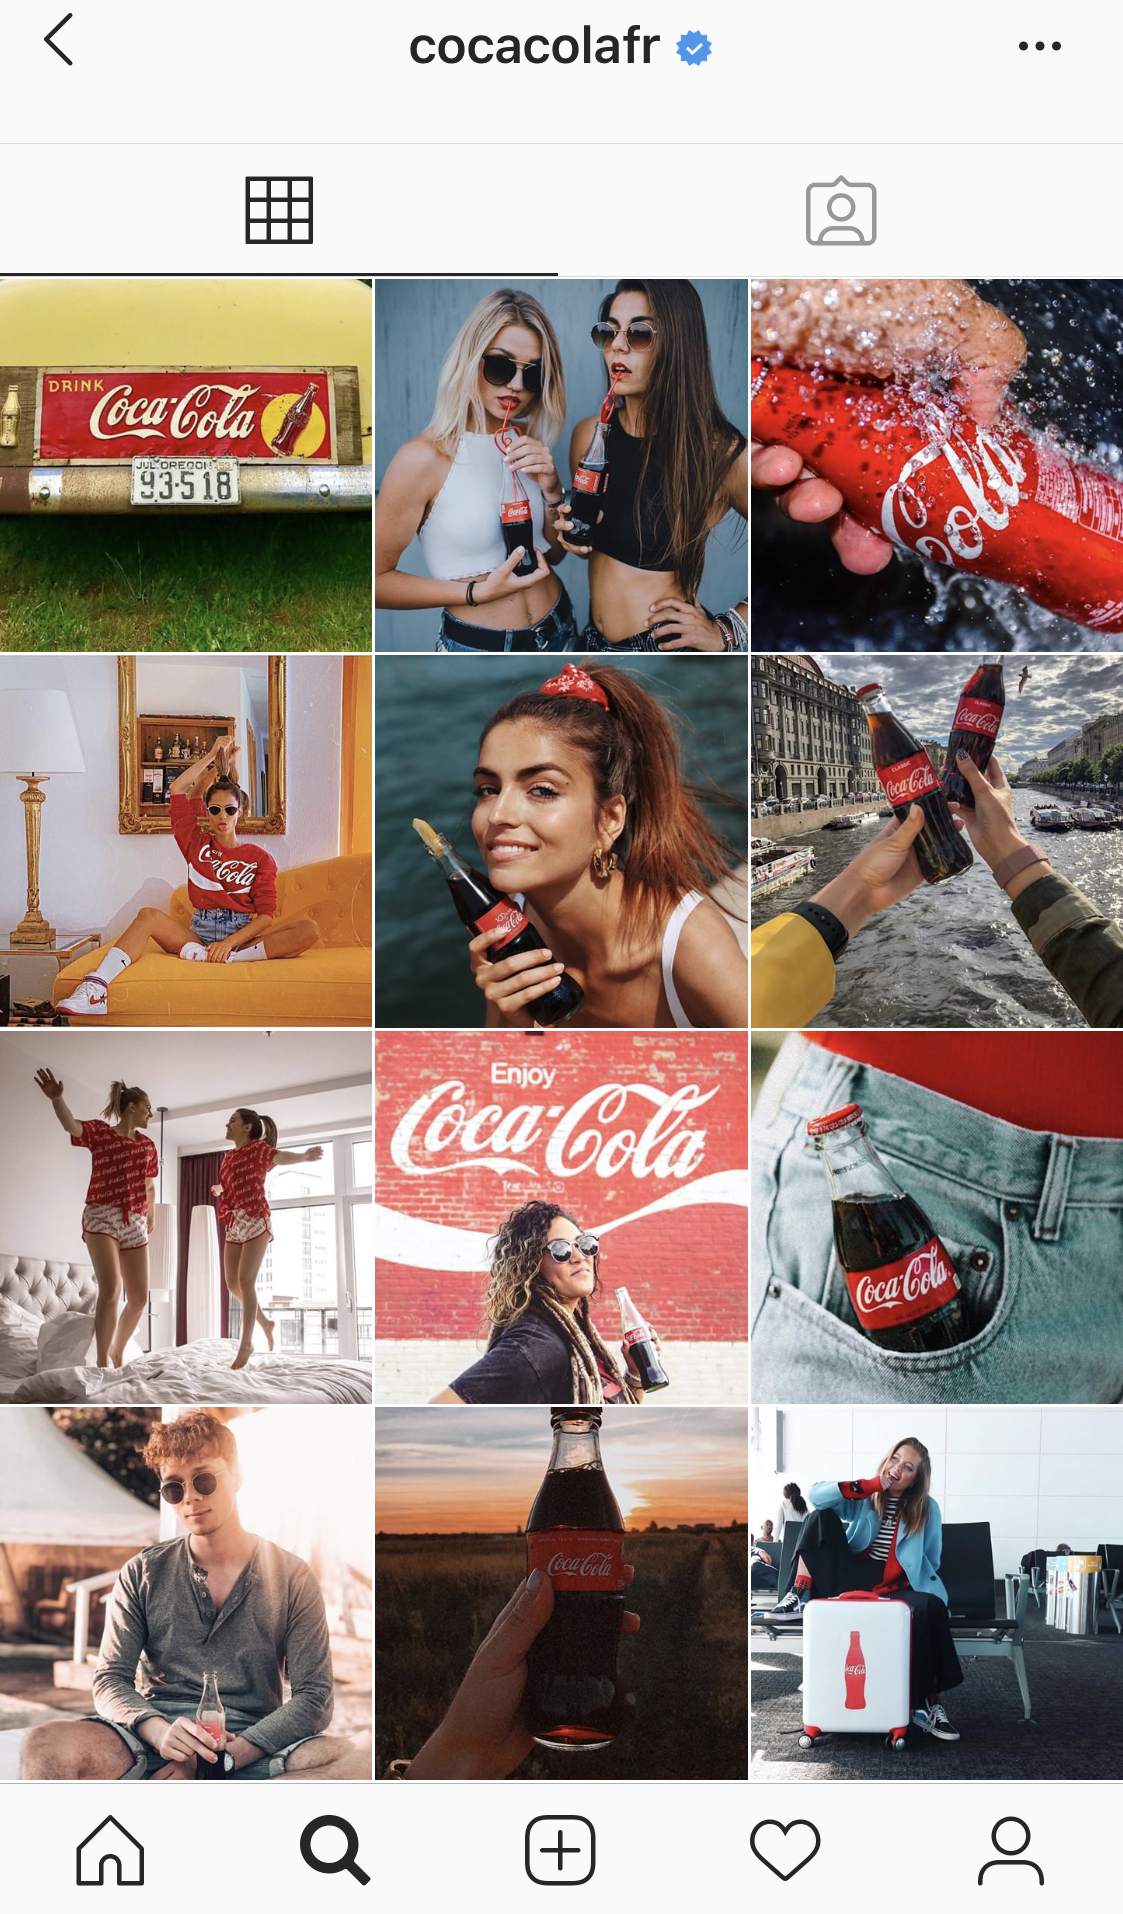 marketing des medias sociaux exemple instagram coca cola